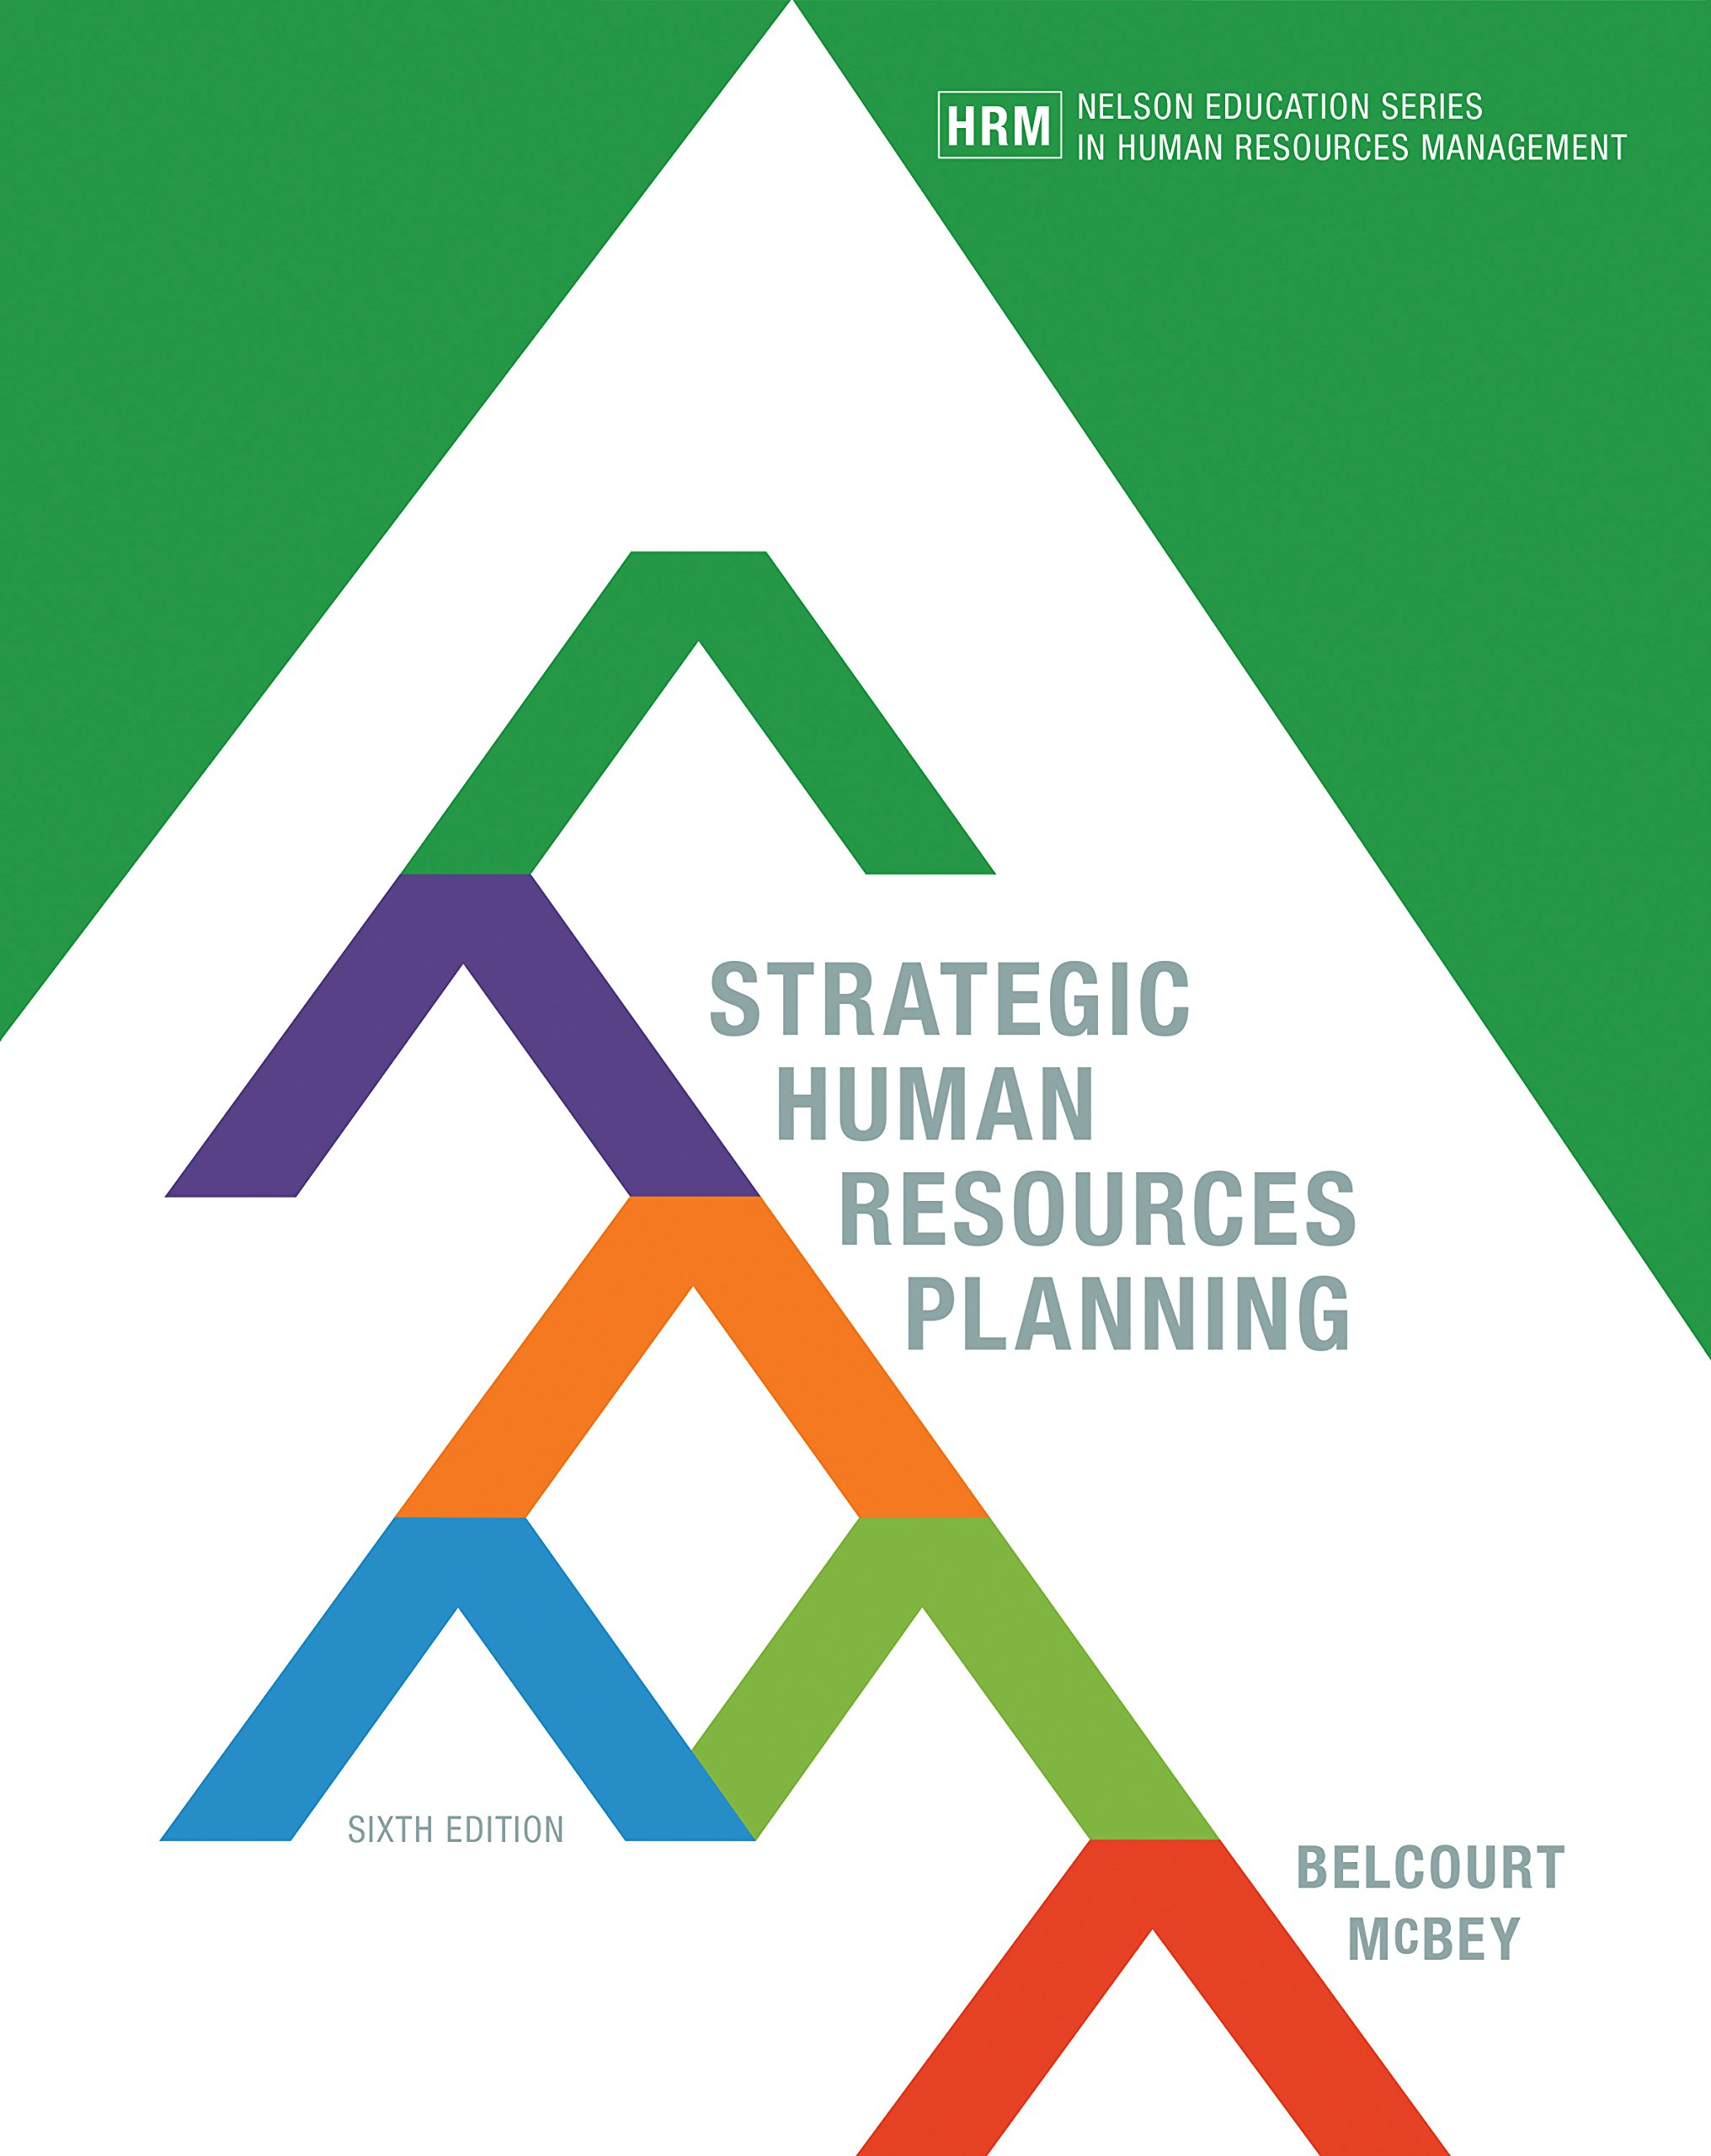 Strategic human resources planning monica belcourt ken mcbey strategic human resources planning monica belcourt ken mcbey 9780176570309 books amazon fandeluxe Gallery